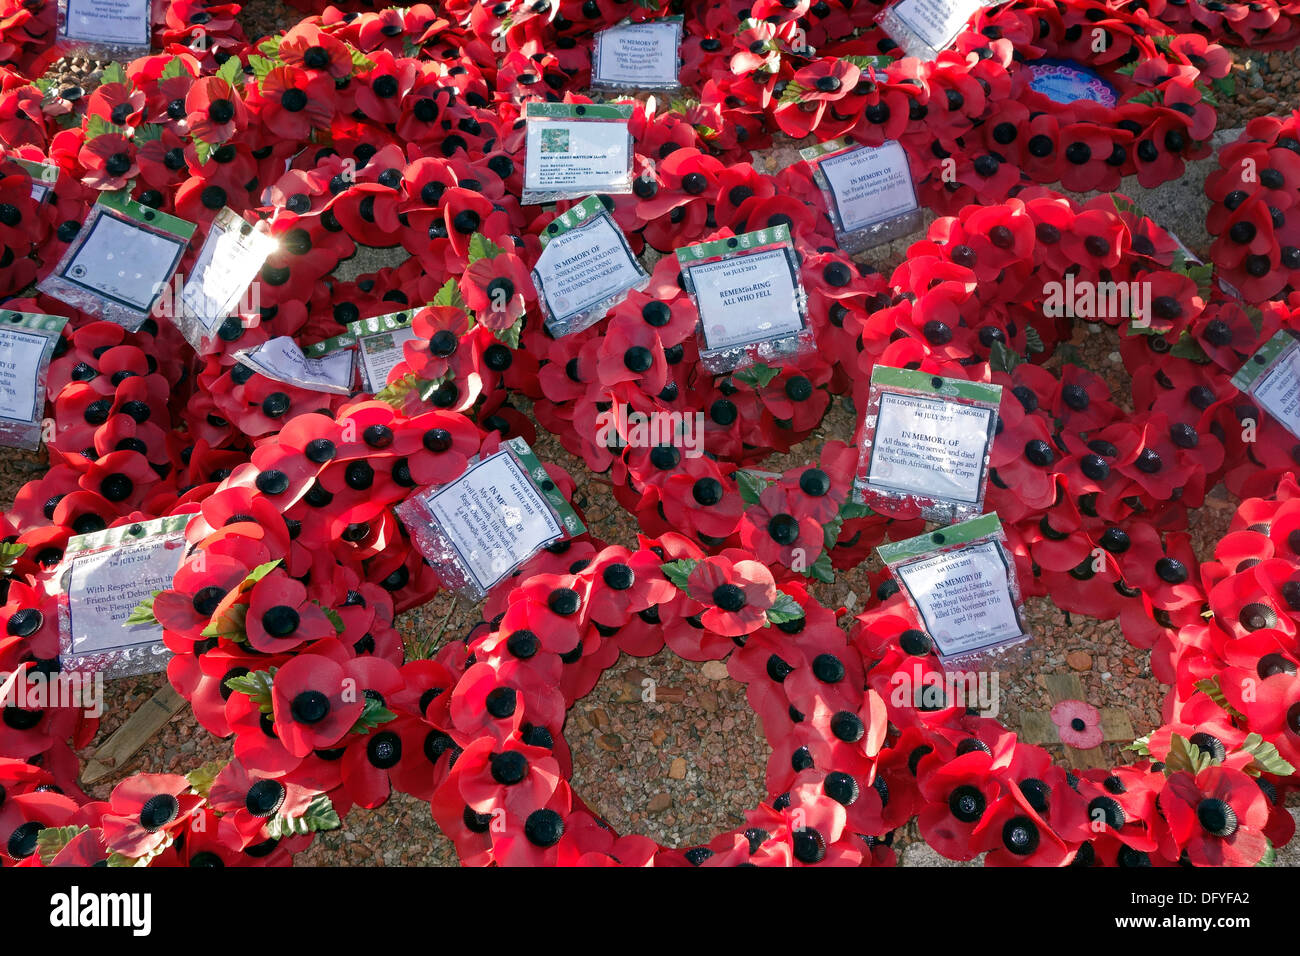 British red poppy wreaths at First World War One monument at WW1 battlefield of the Battle of the Somme, Picardy, France - Stock Image